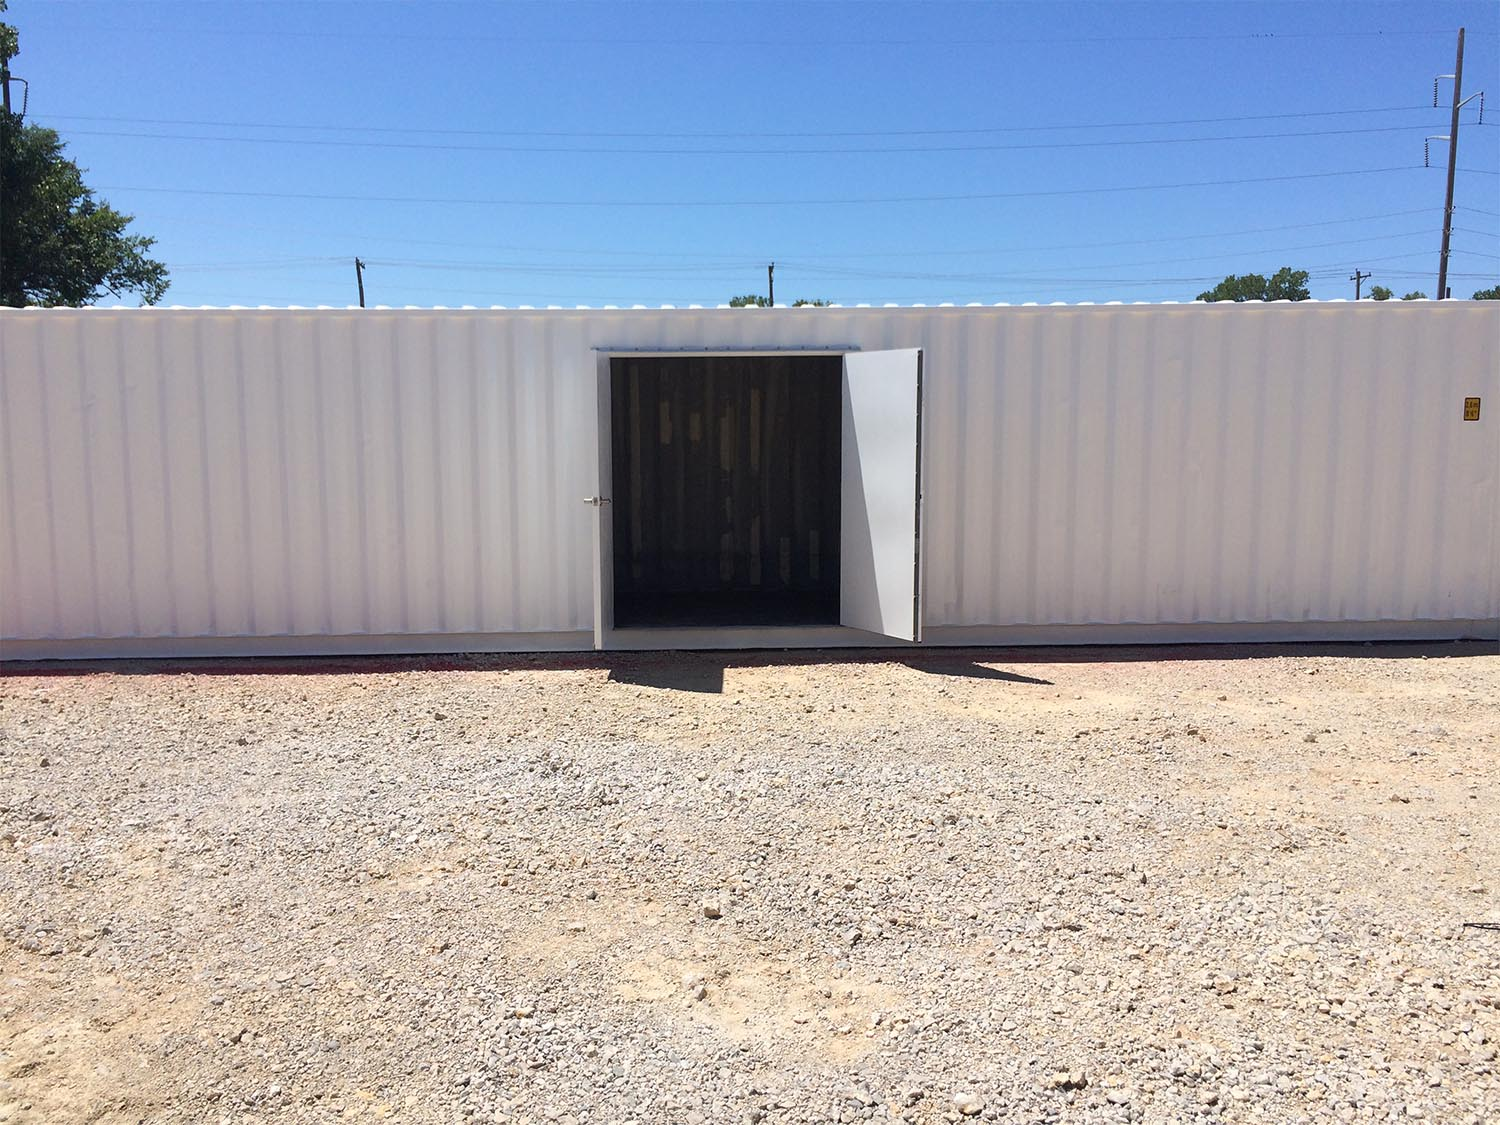 Double swing doors in the middle of a shipping container